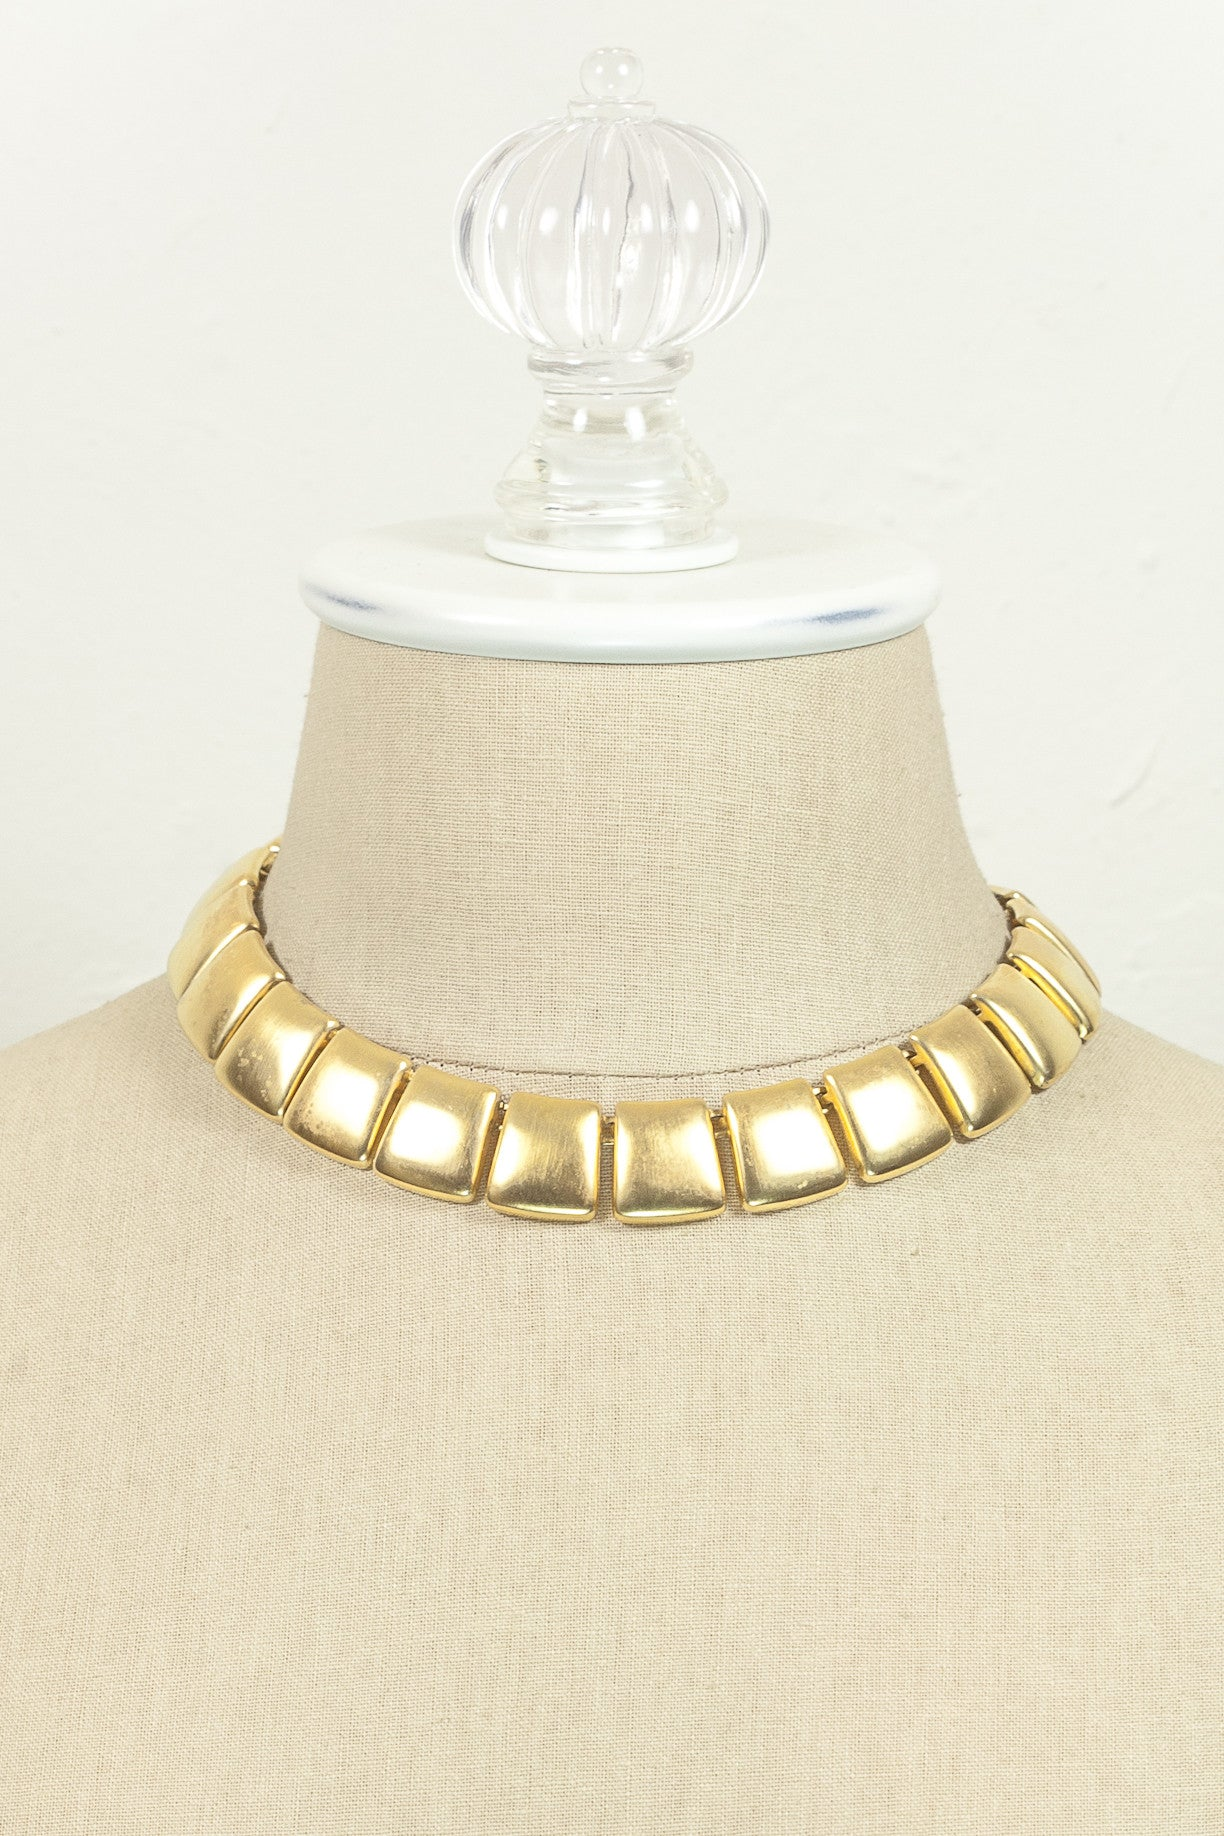 90's__Anne Klein__Square Link Necklace